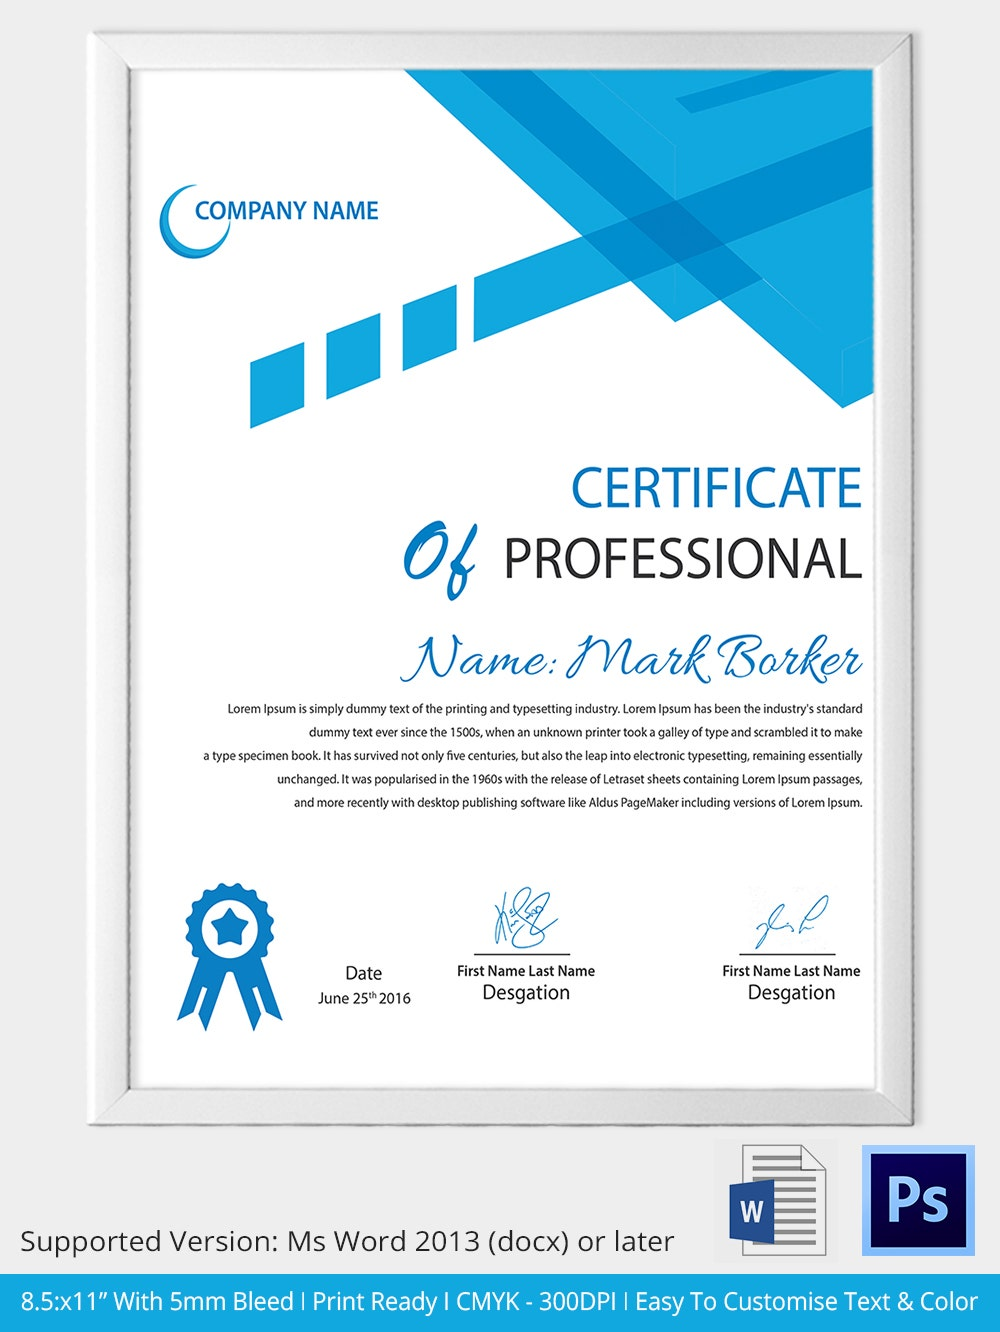 Training certificate design exolabogados training certificate design xflitez Image collections